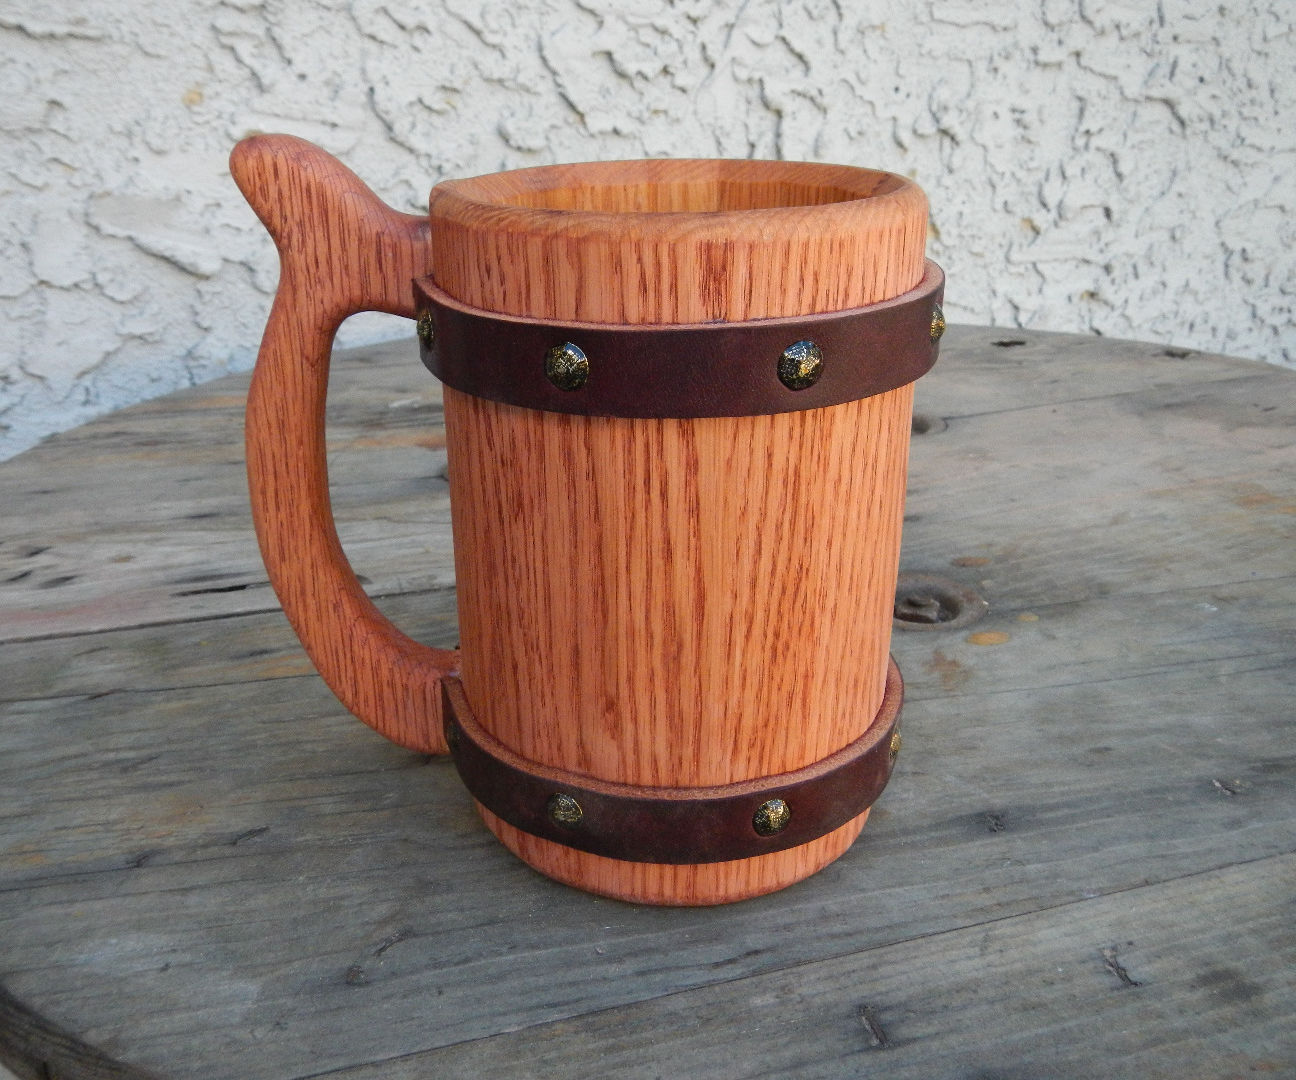 42oz Wooden Beer Mug